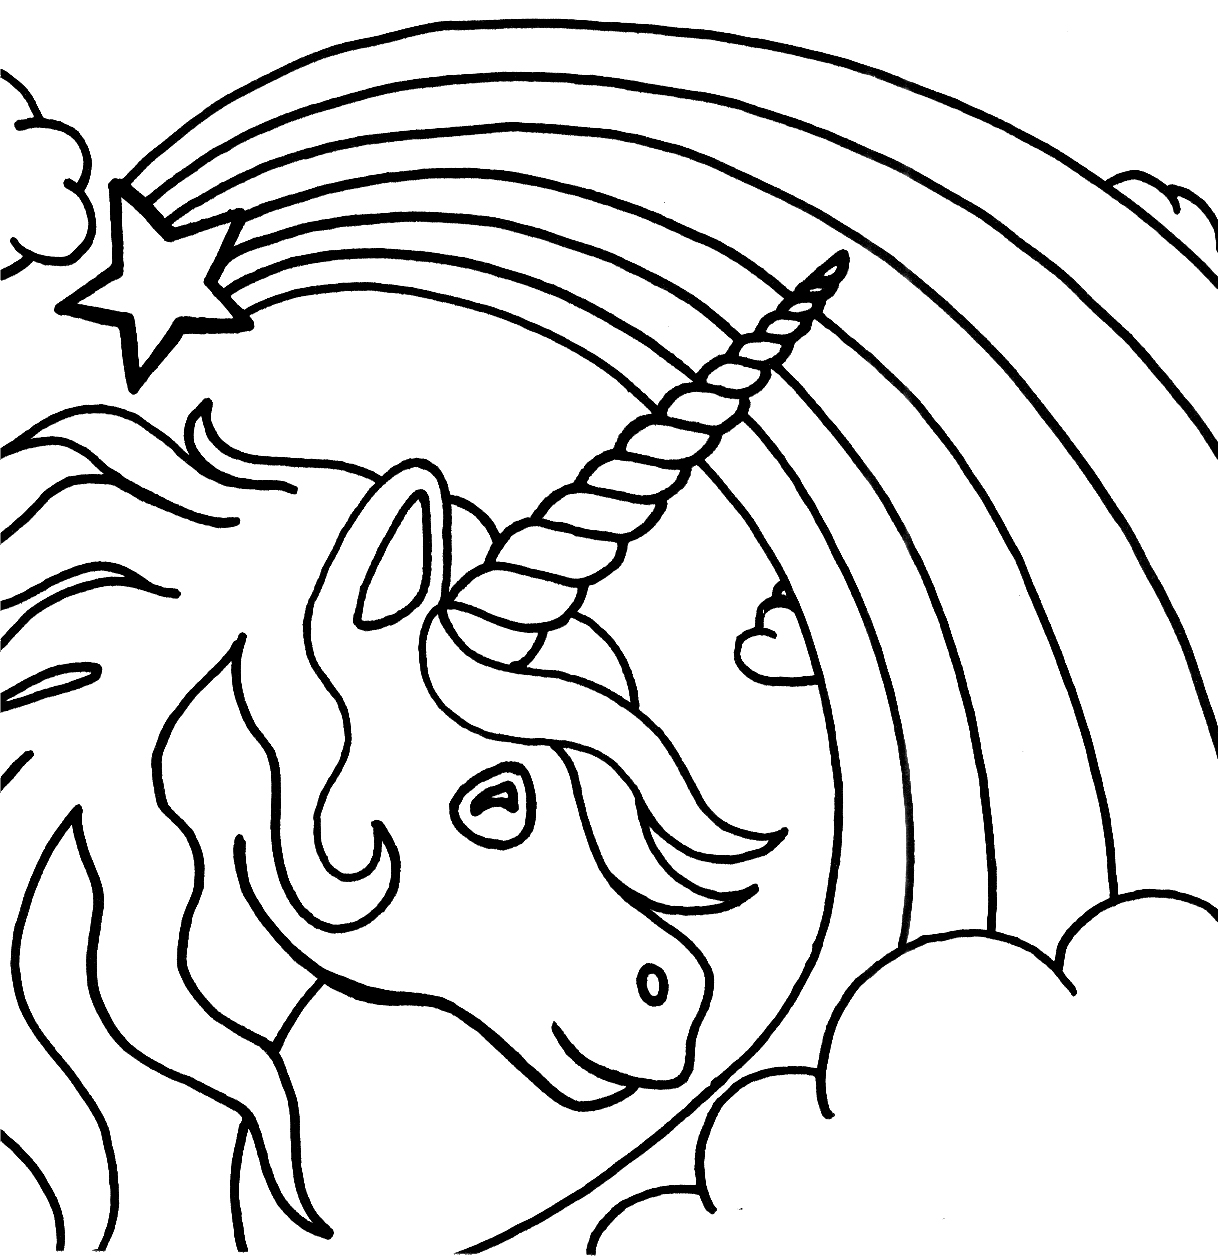 unicorn coloring pages for kids - Colouring Templates For Kids